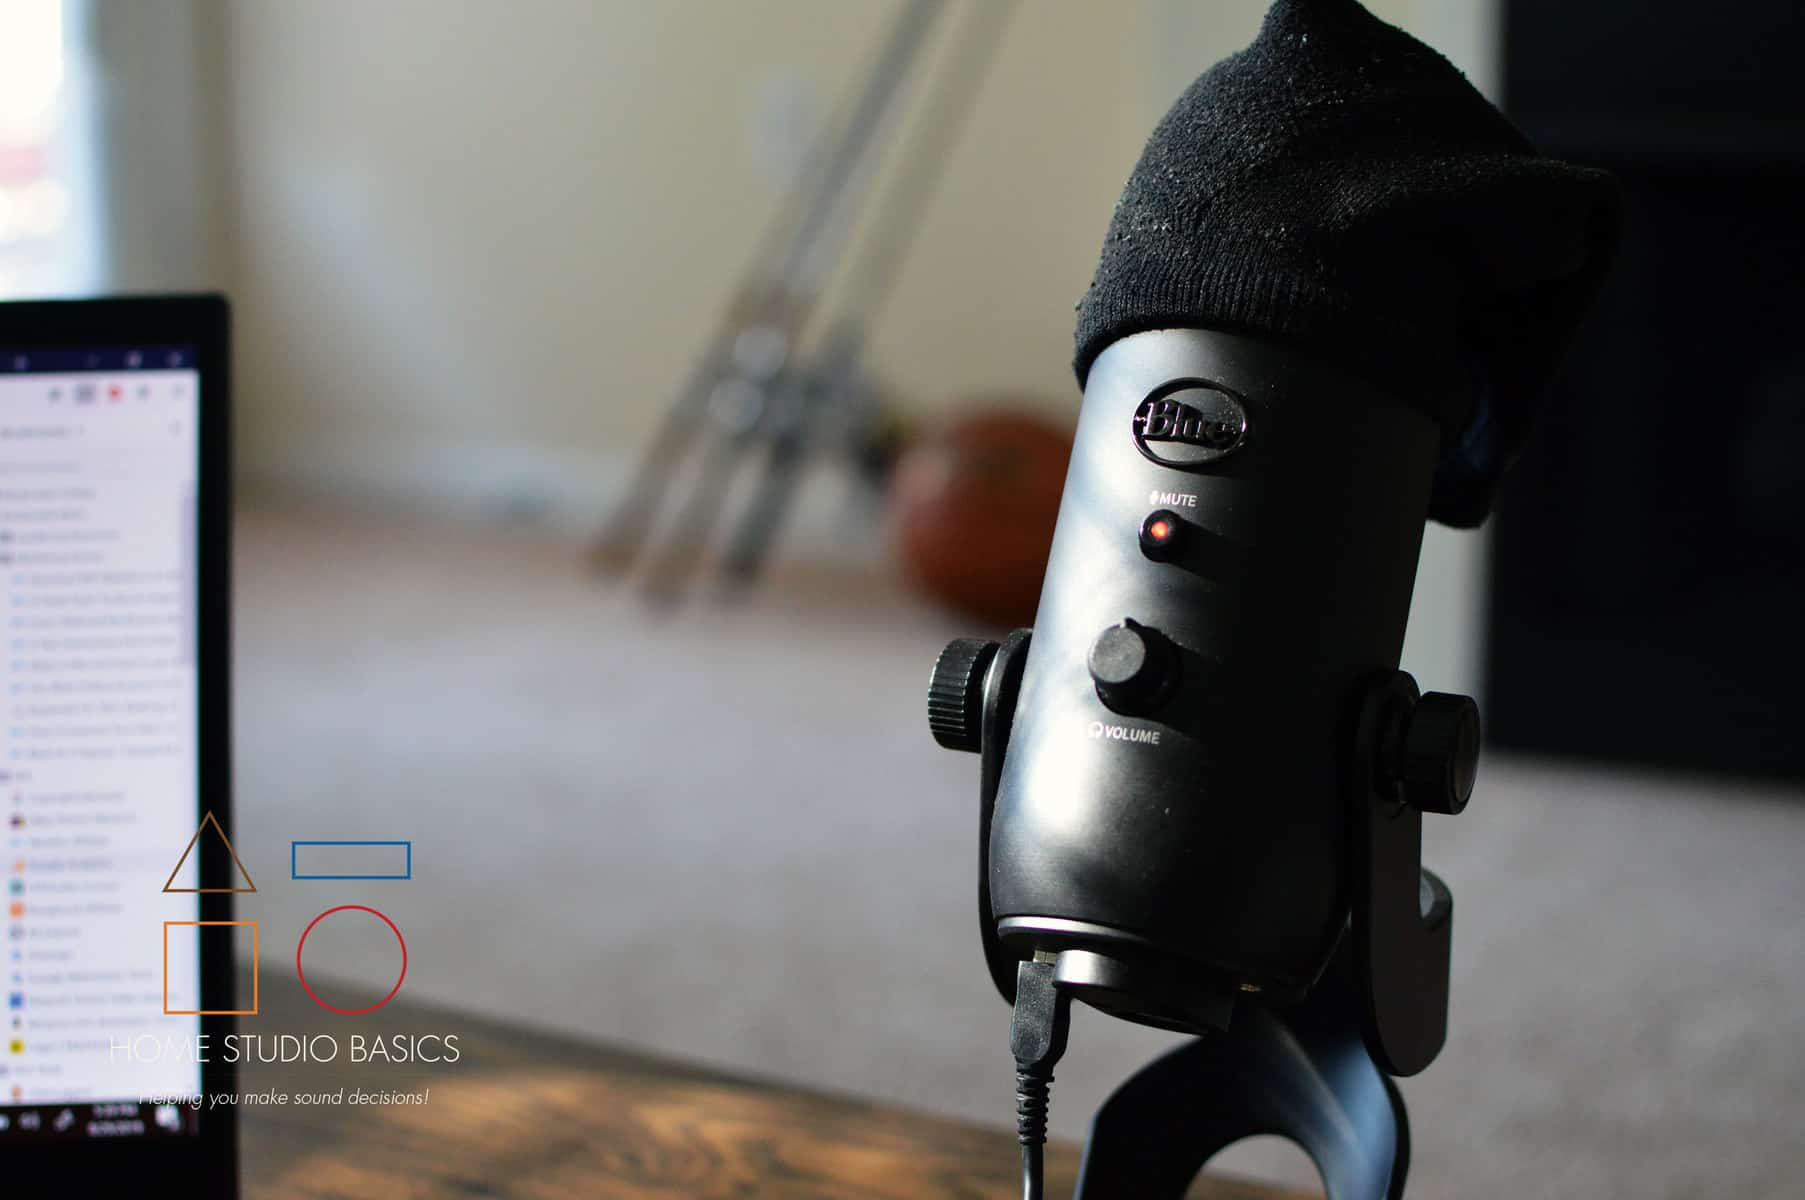 Blue Yeti USB Microphone Review